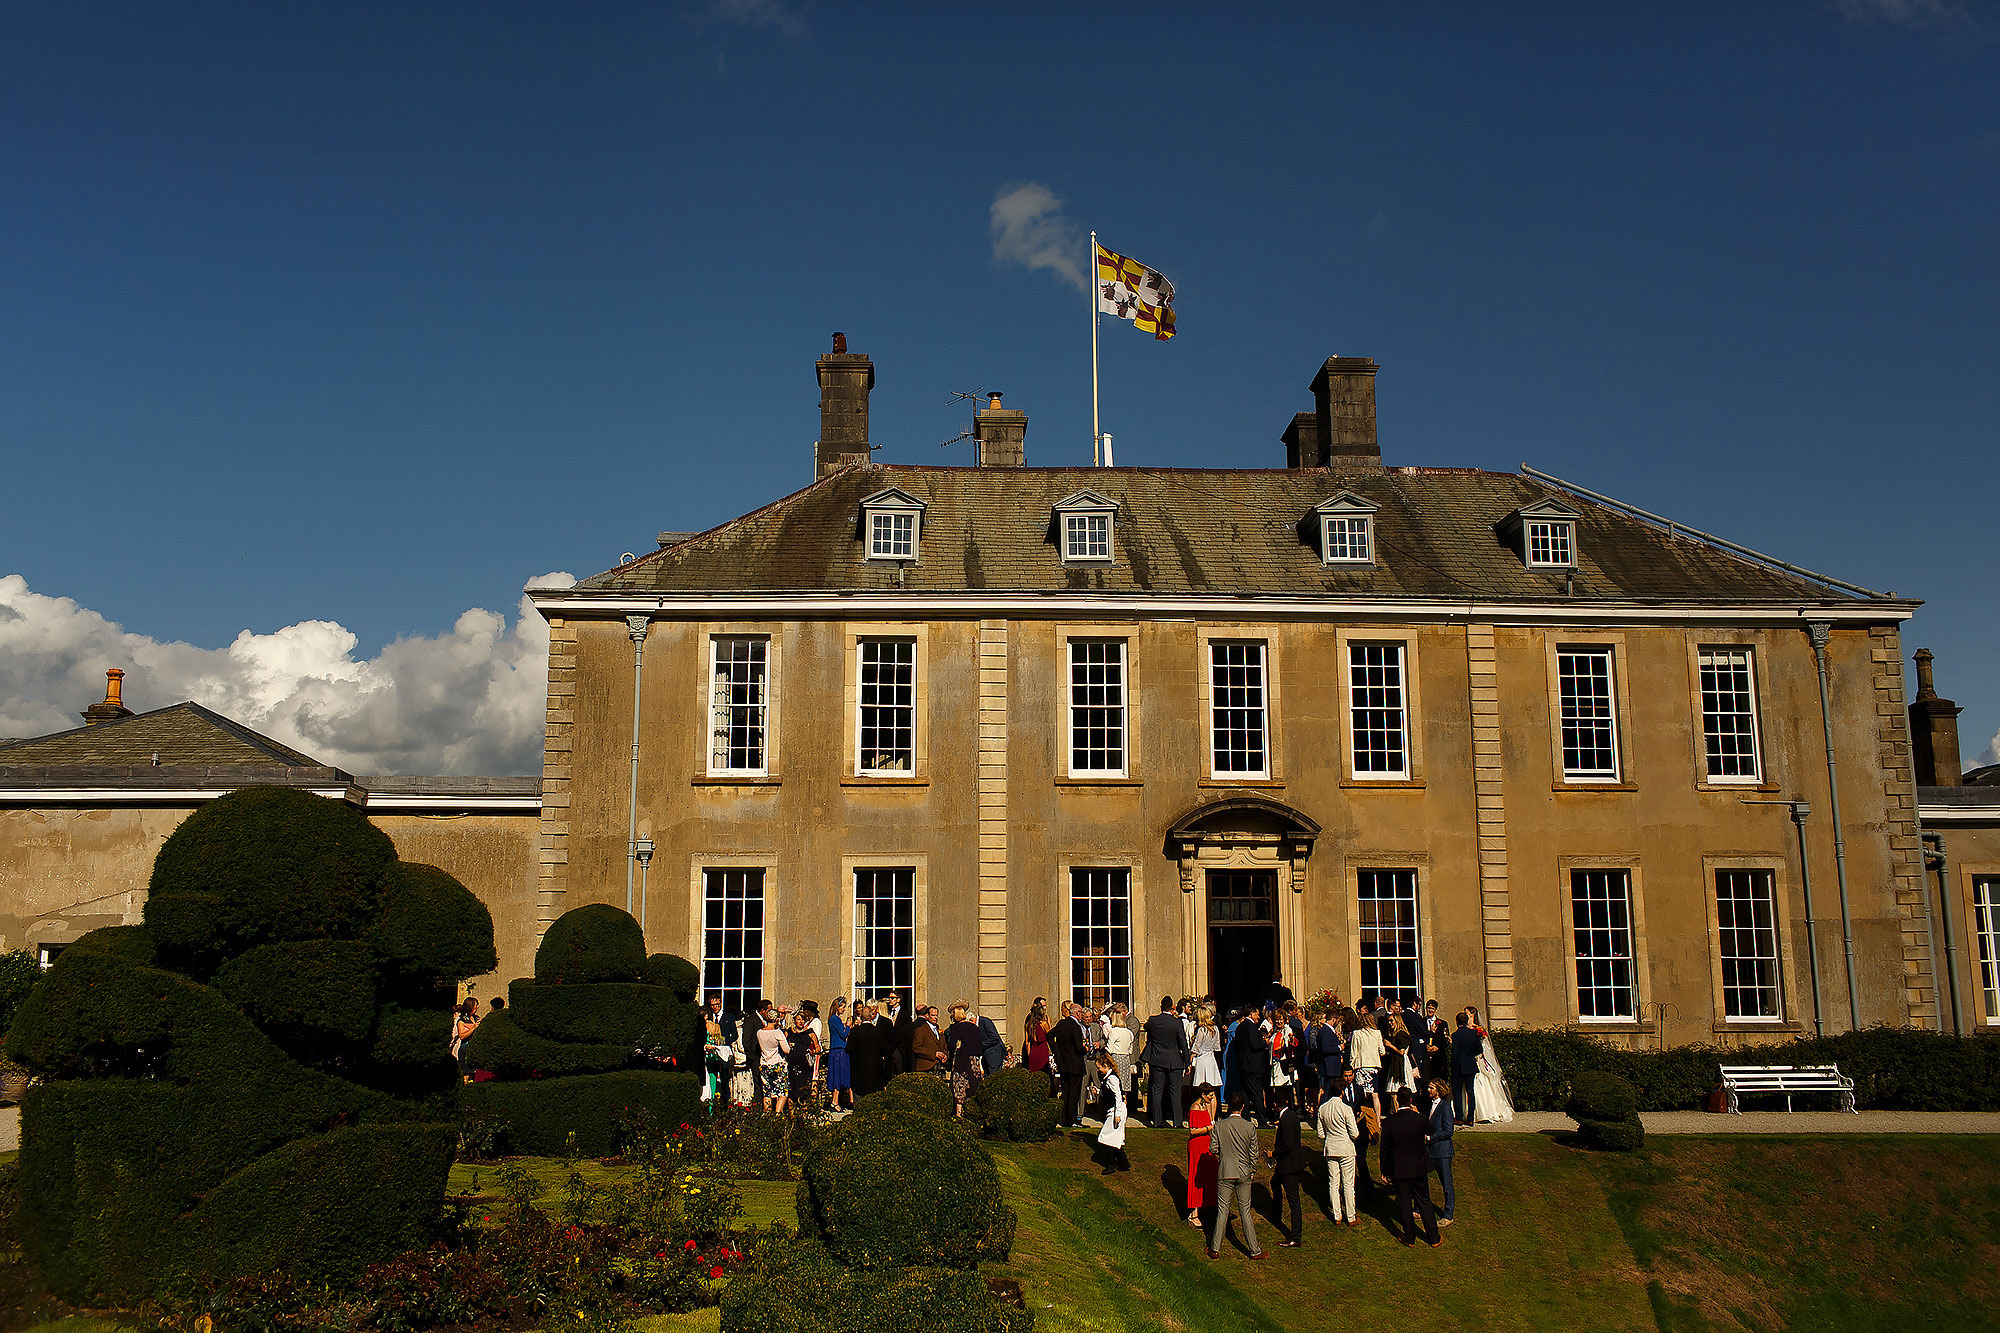 Wedding guests enjoying drinks reception on the lawn of historic lake district building | Lake District Wedding by Toni Darcy Photography